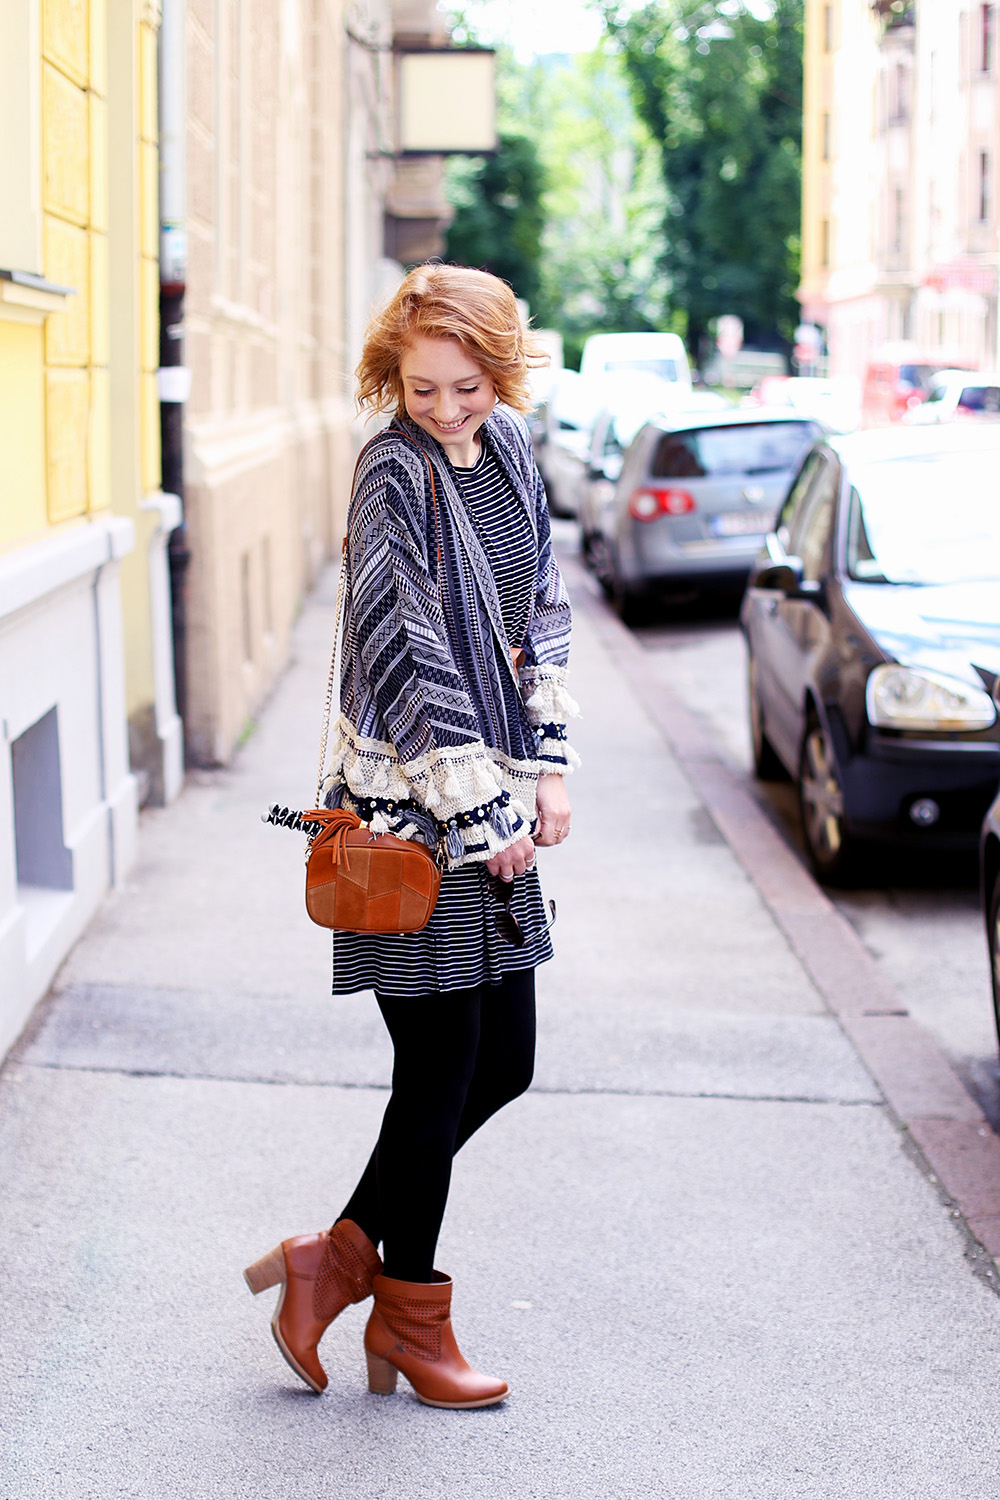 Patchwork Tasche, Leder Tasche, Sommer Trend, Trendthema Bommel, Sommer, Streetstyle Innsbruck, Outfit, Trend, Modetipps, Finde deinen Stil, Influencer, Deutschland, Berlin, Mode Blog, Modeblog, Advance Your Style, advanceyourstyle